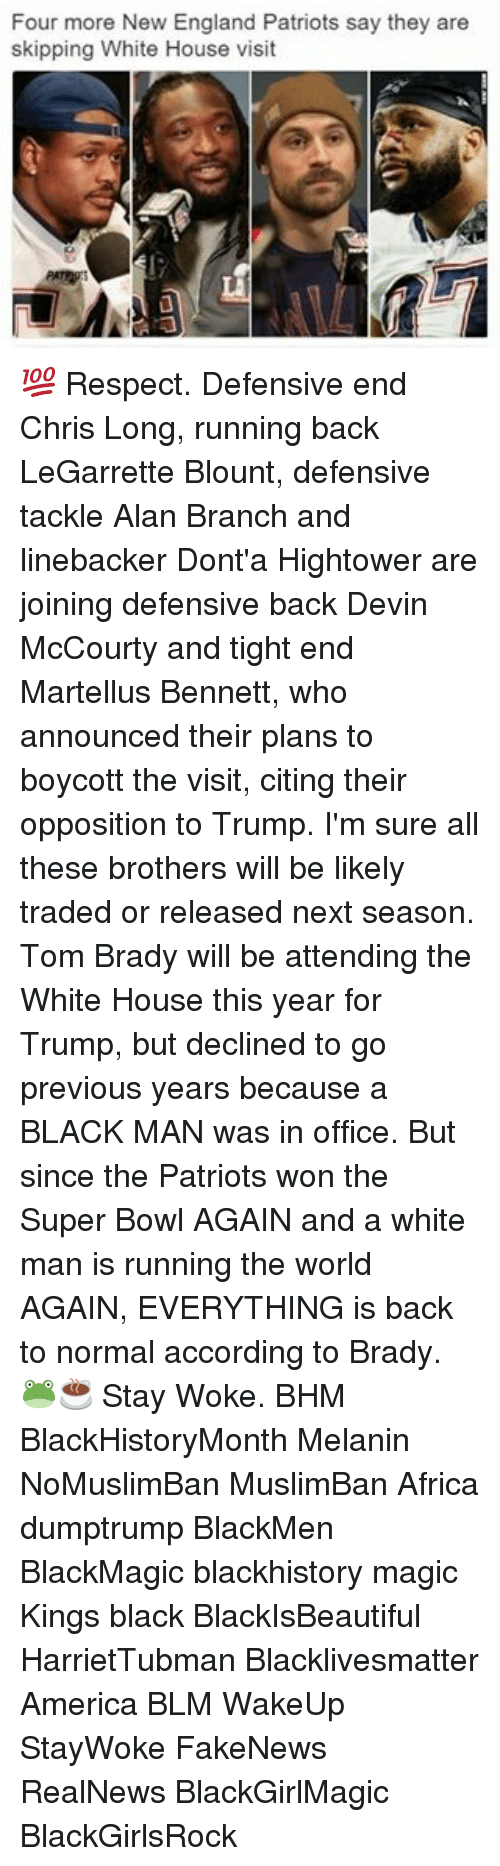 white-house-visits: Four more New England Patriots say they are  skipping White House visit 💯 Respect. Defensive end Chris Long, running back LeGarrette Blount, defensive tackle Alan Branch and linebacker Dont'a Hightower are joining defensive back Devin McCourty and tight end Martellus Bennett, who announced their plans to boycott the visit, citing their opposition to Trump. I'm sure all these brothers will be likely traded or released next season. Tom Brady will be attending the White House this year for Trump, but declined to go previous years because a BLACK MAN was in office. But since the Patriots won the Super Bowl AGAIN and a white man is running the world AGAIN, EVERYTHING is back to normal according to Brady. 🐸☕️ Stay Woke. BHM BlackHistoryMonth Melanin NoMuslimBan MuslimBan Africa dumptrump BlackMen BlackMagic blackhistory magic Kings black BlackIsBeautiful HarrietTubman Blacklivesmatter America BLM WakeUp StayWoke FakeNews RealNews BlackGirlMagic BlackGirlsRock